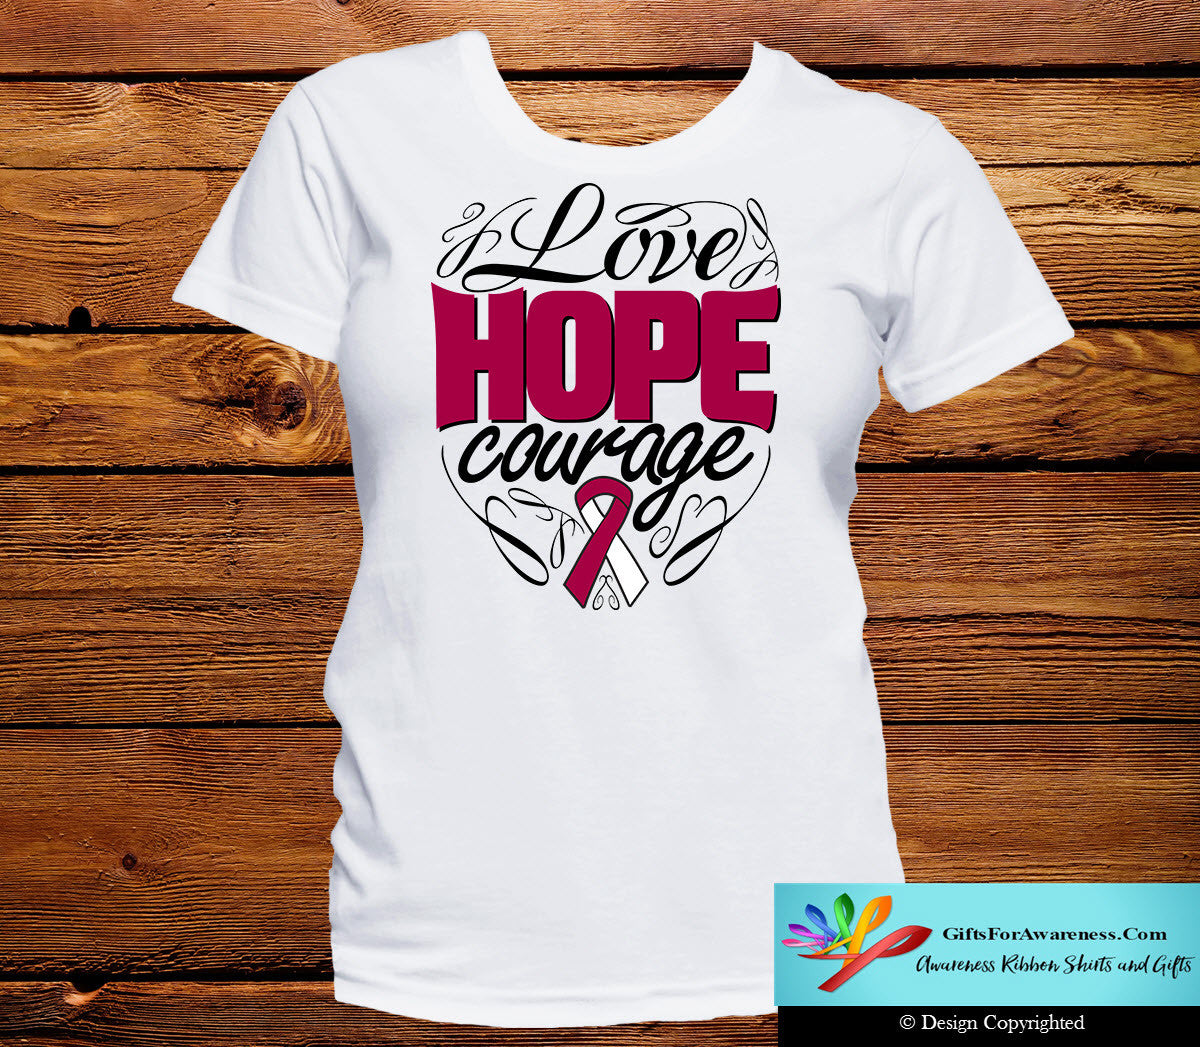 Throat Cancer Love Hope Courage Shirts - GiftsForAwareness